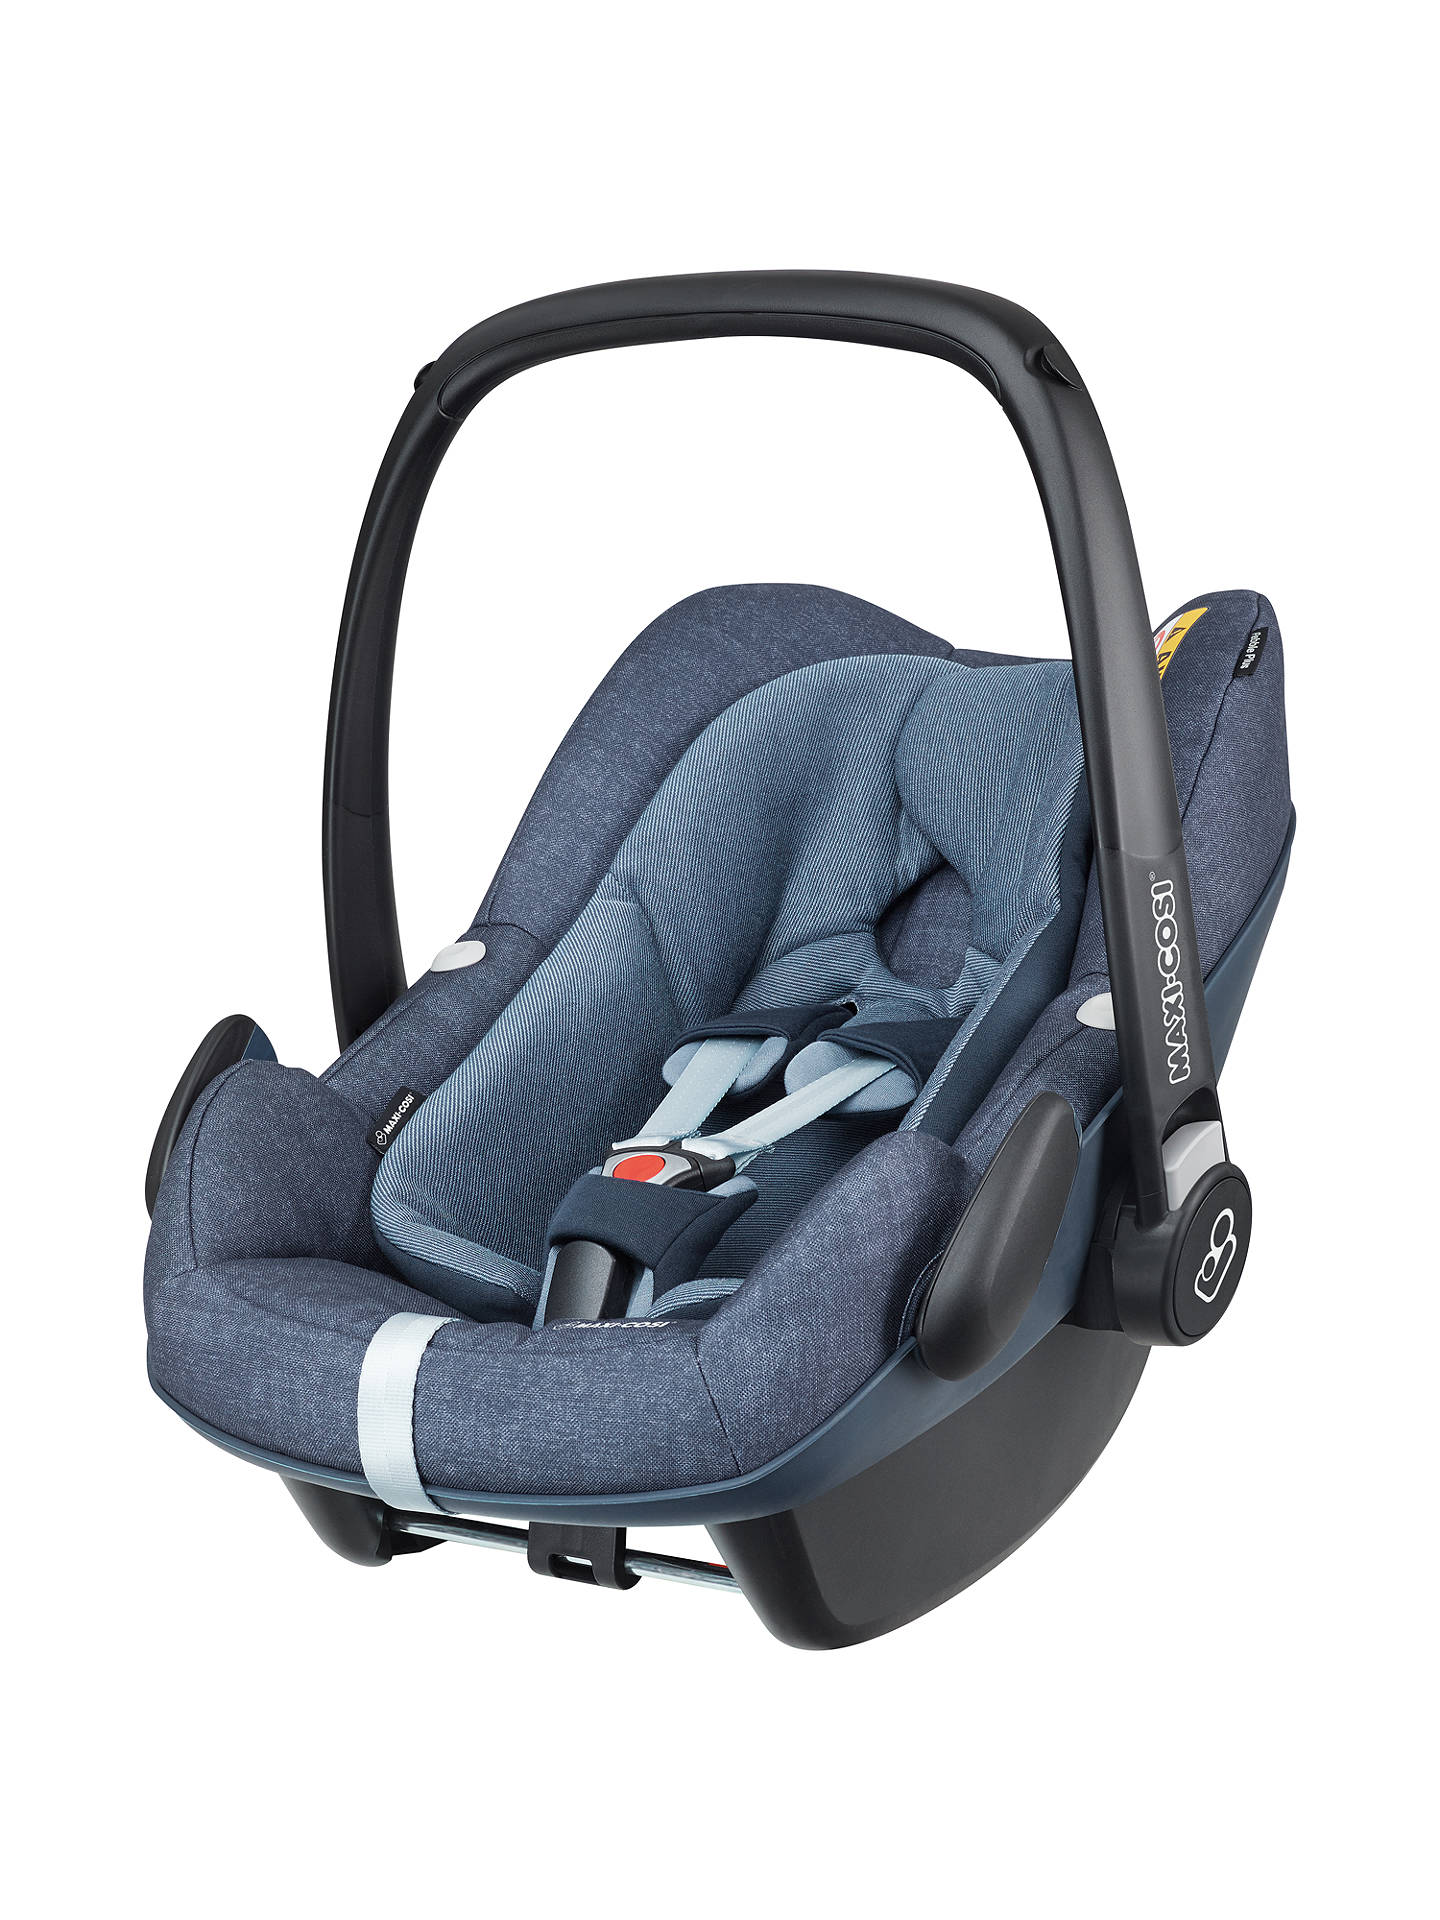 maxi cosi pebble plus i size baby car seat nomad blue at john lewis partners. Black Bedroom Furniture Sets. Home Design Ideas